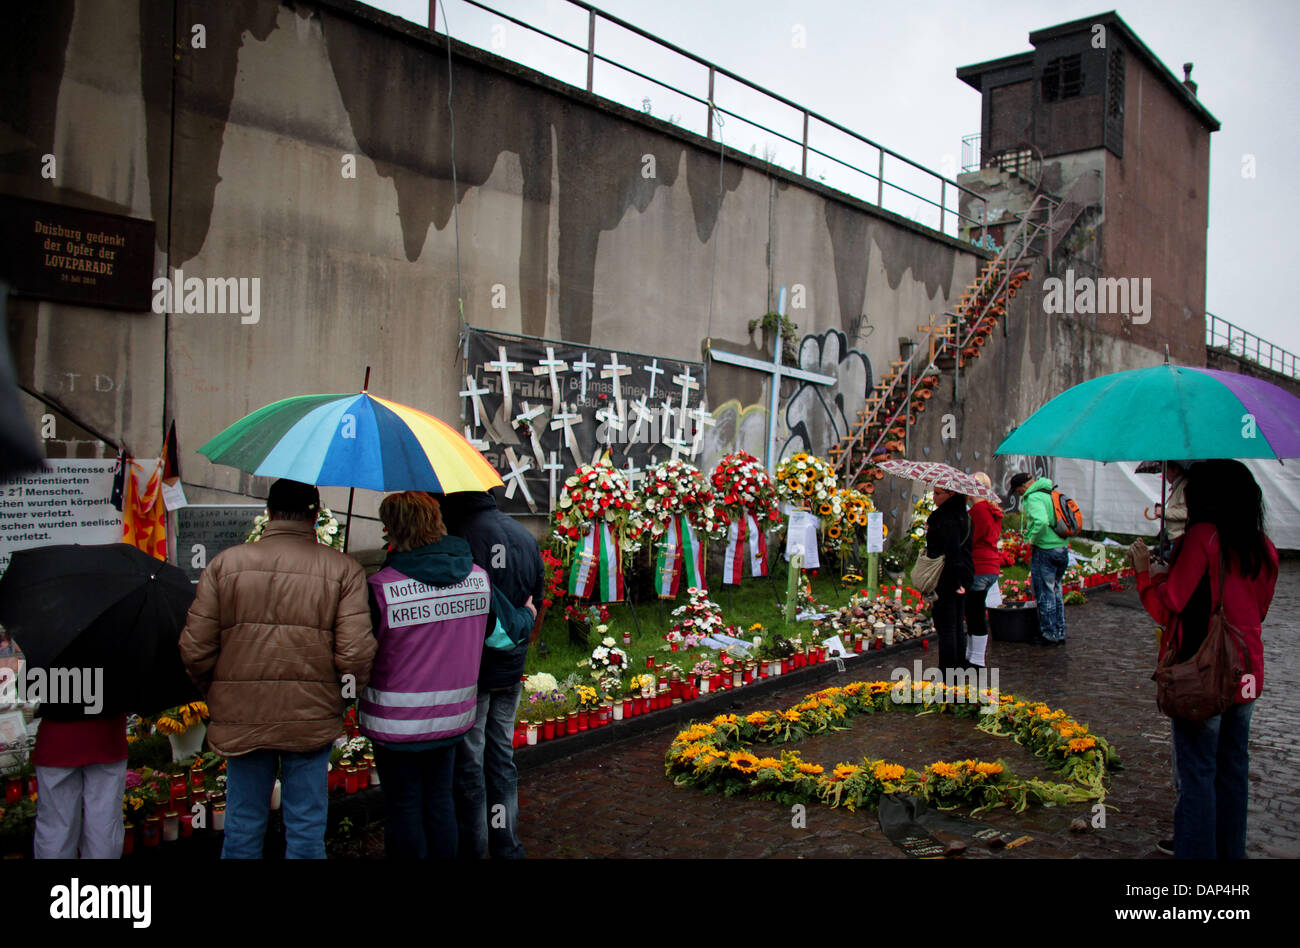 People stand at the scene of the accident at  the former premises of the Loveparade in Duisburg, Germany, 24 July - Stock Image